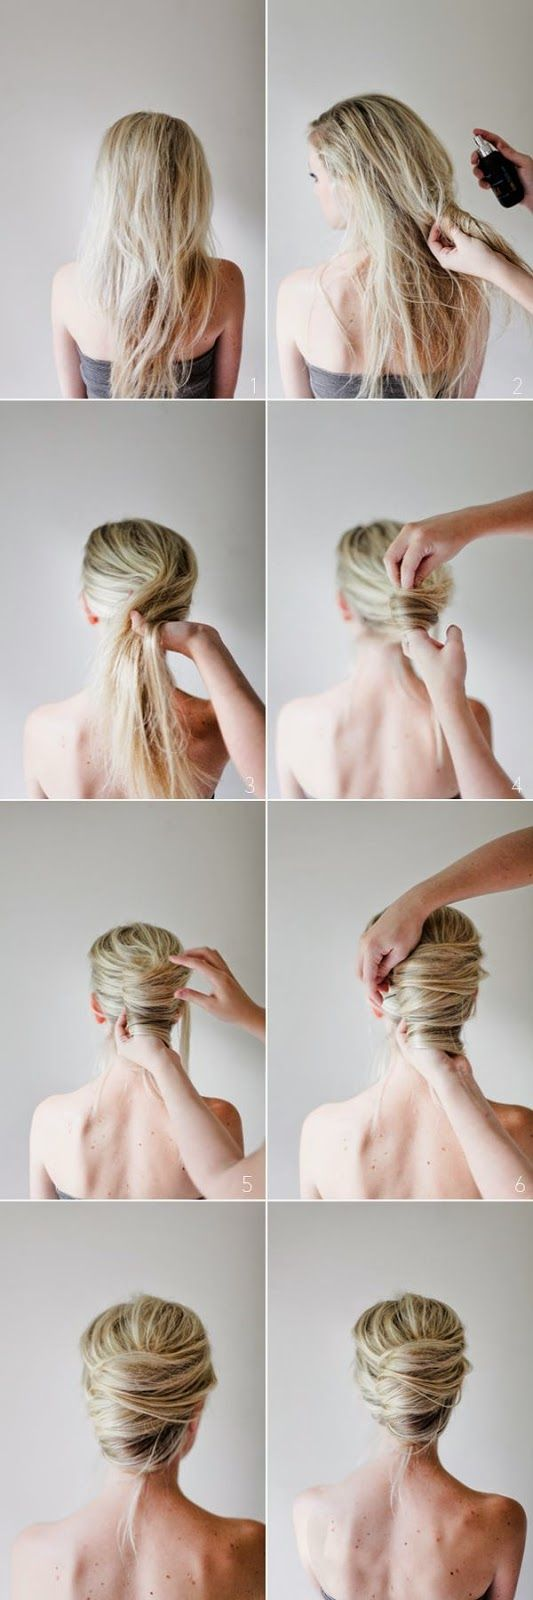 Surprising 1000 Images About Hair On Pinterest Kirsten Storms Short Hairstyle Inspiration Daily Dogsangcom